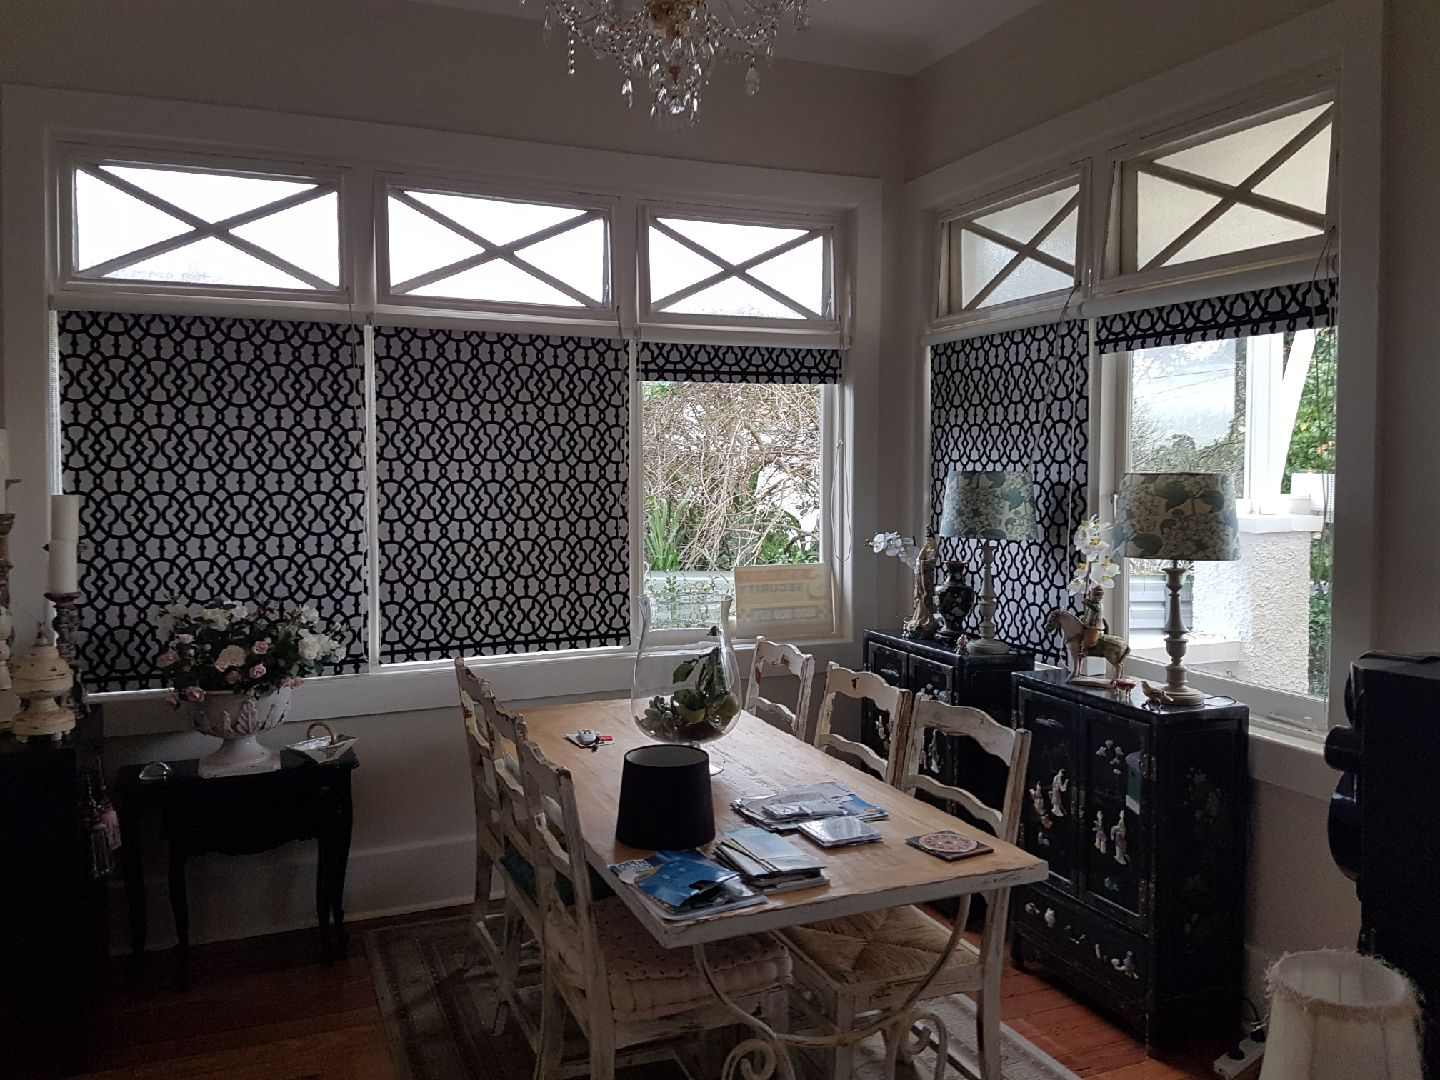 Patterned Roller Blinds with Trims